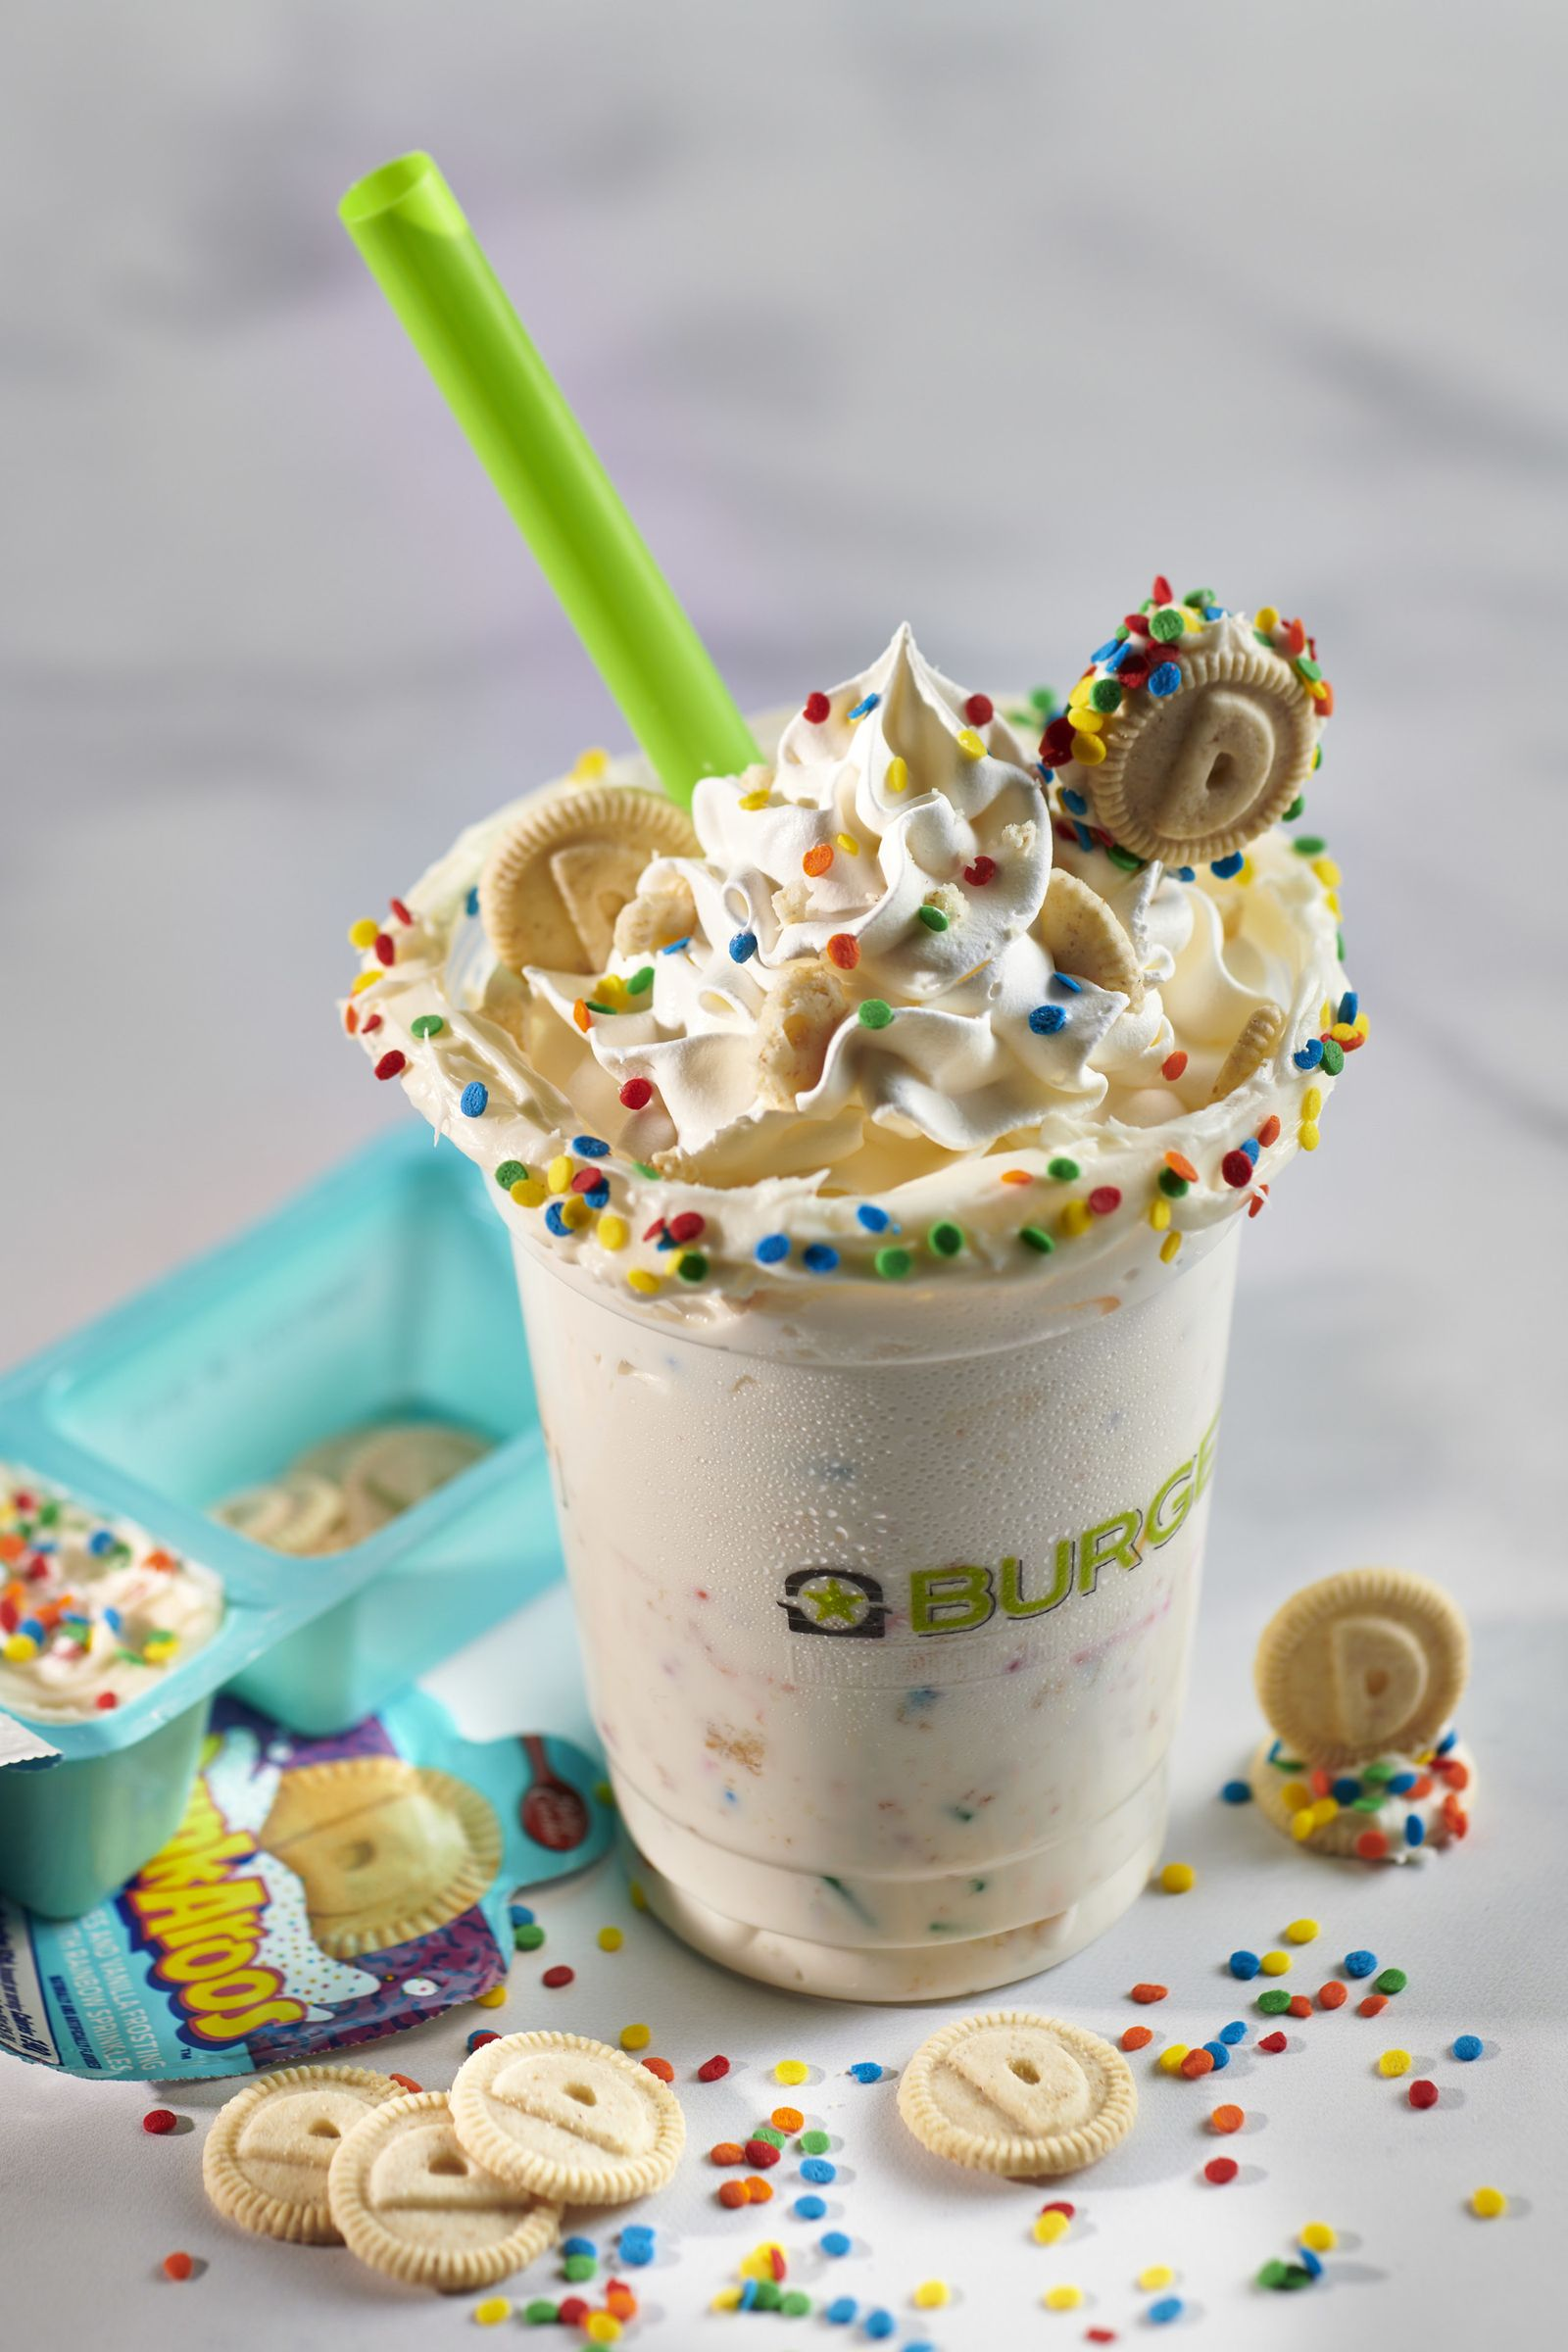 """BurgerFi Offers a Sweet """"Blast from the Past"""" with a Limited Dunkaroos Shake"""